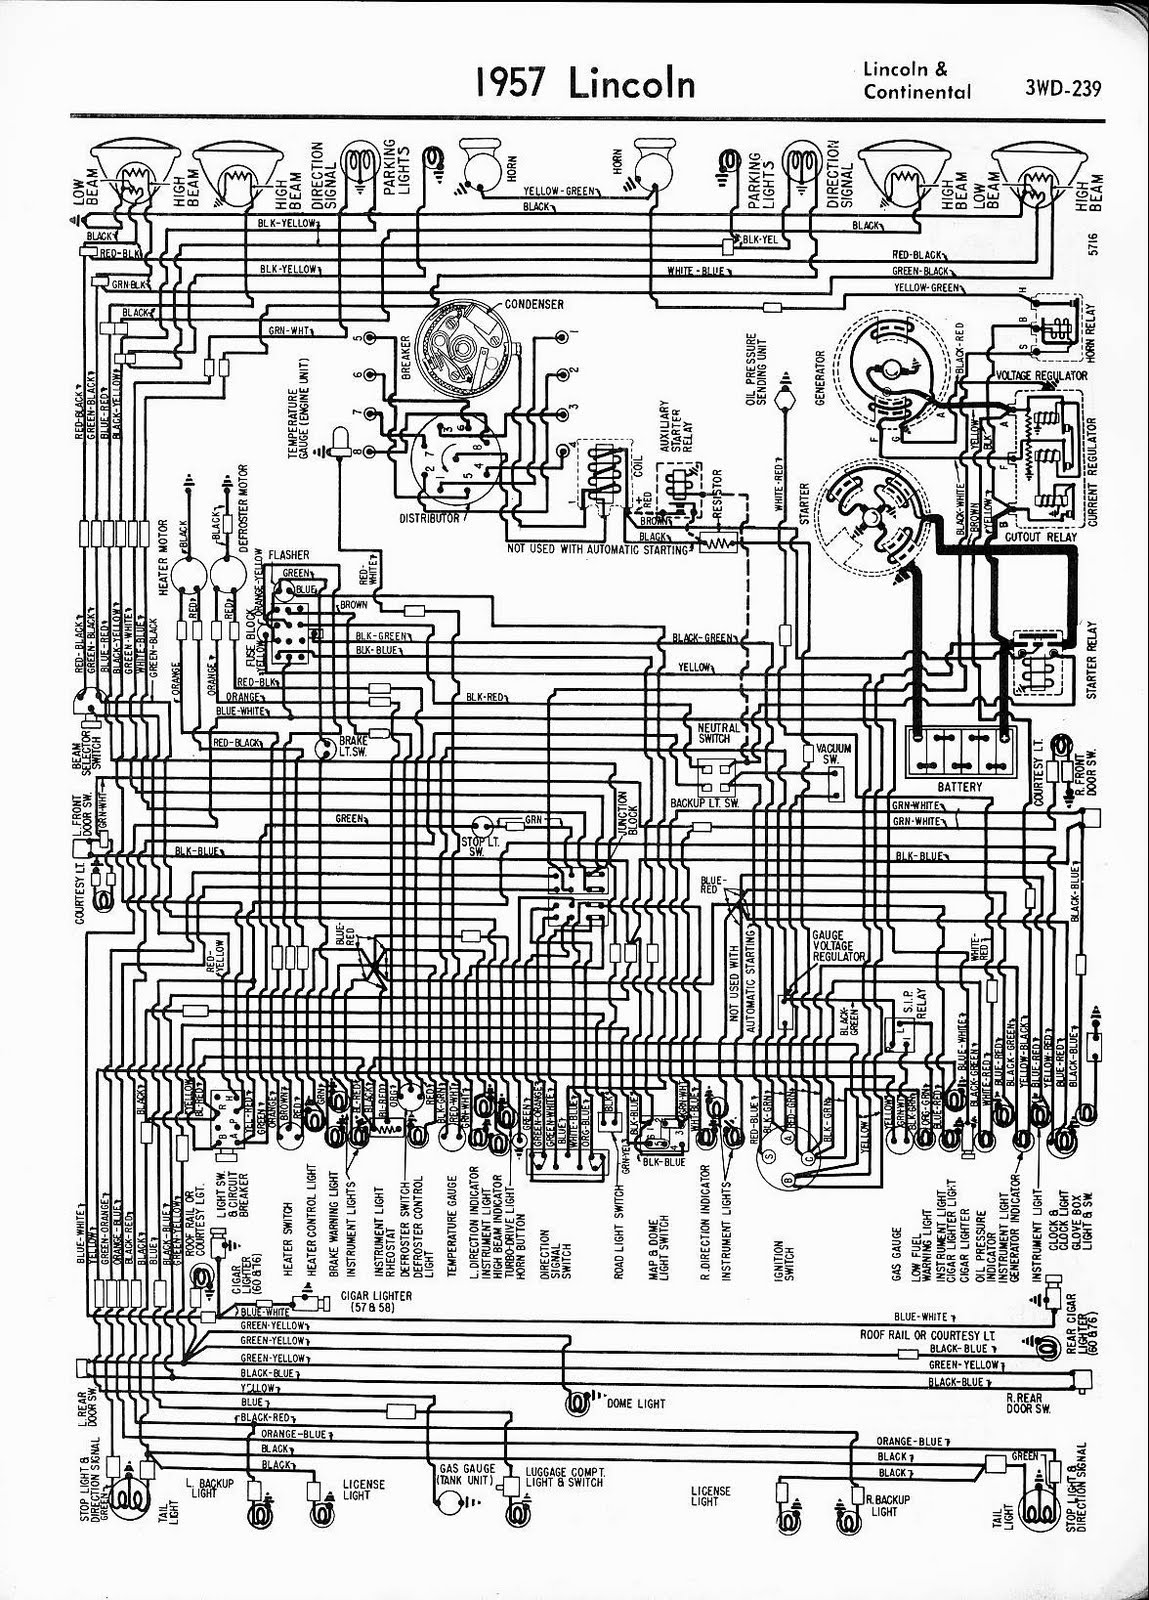 Free Auto    Wiring       Diagram     1957    Lincoln       Continental       Diagram